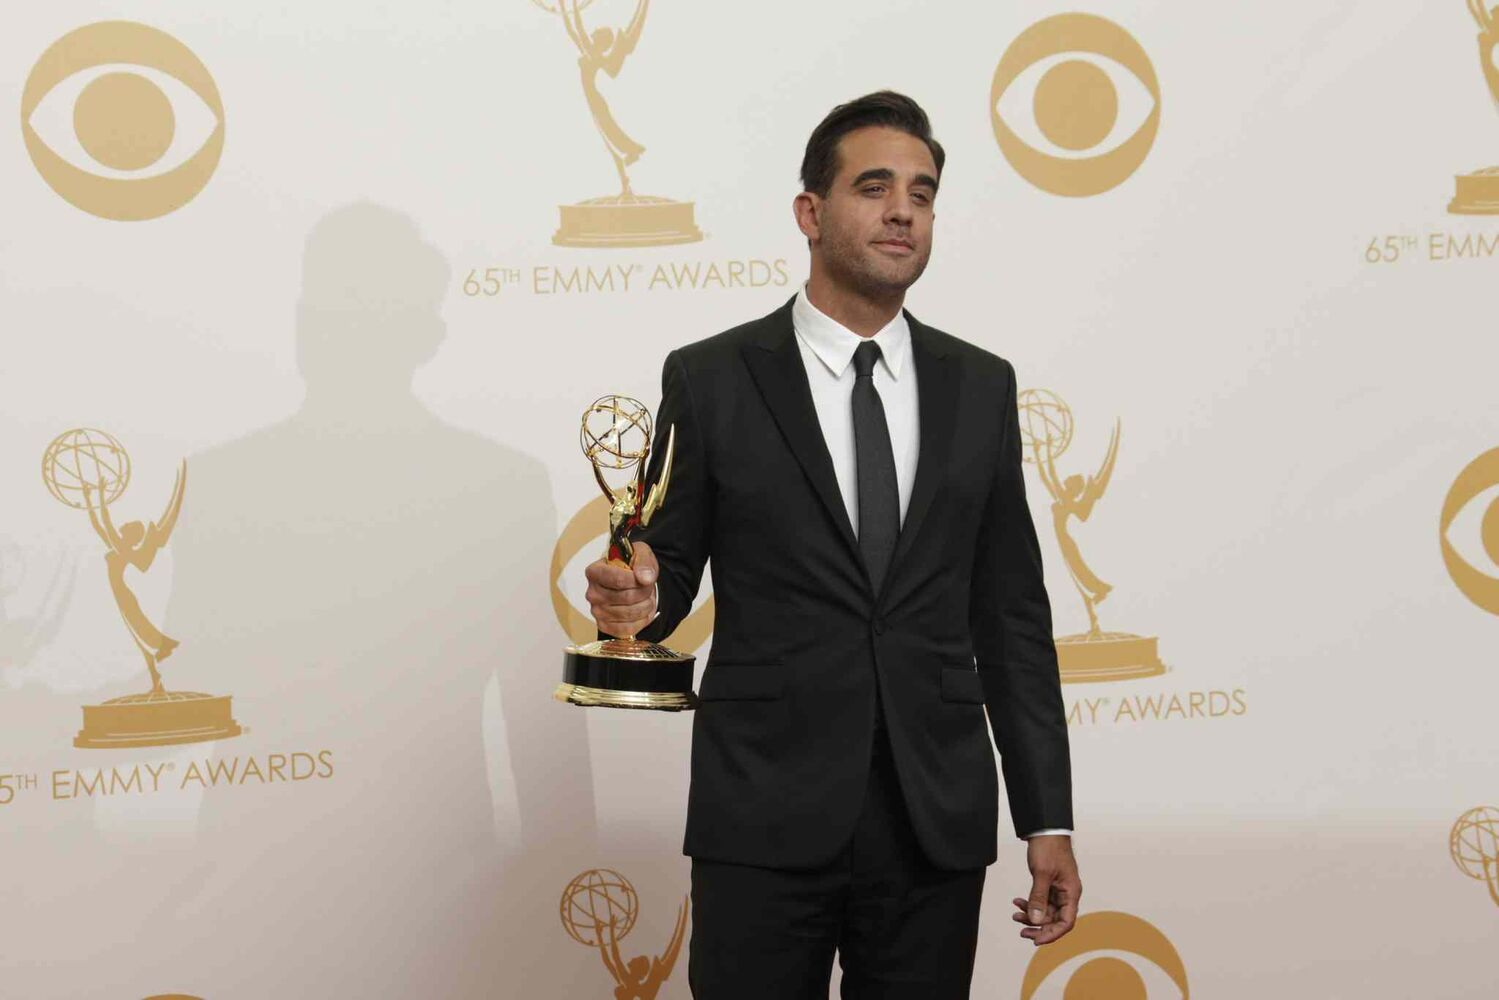 Bobby Cannavale backstage the 65th Annual Primetime Emmy Awards. Cannavale of Boardwalk Empire won supporting actor in a drama,